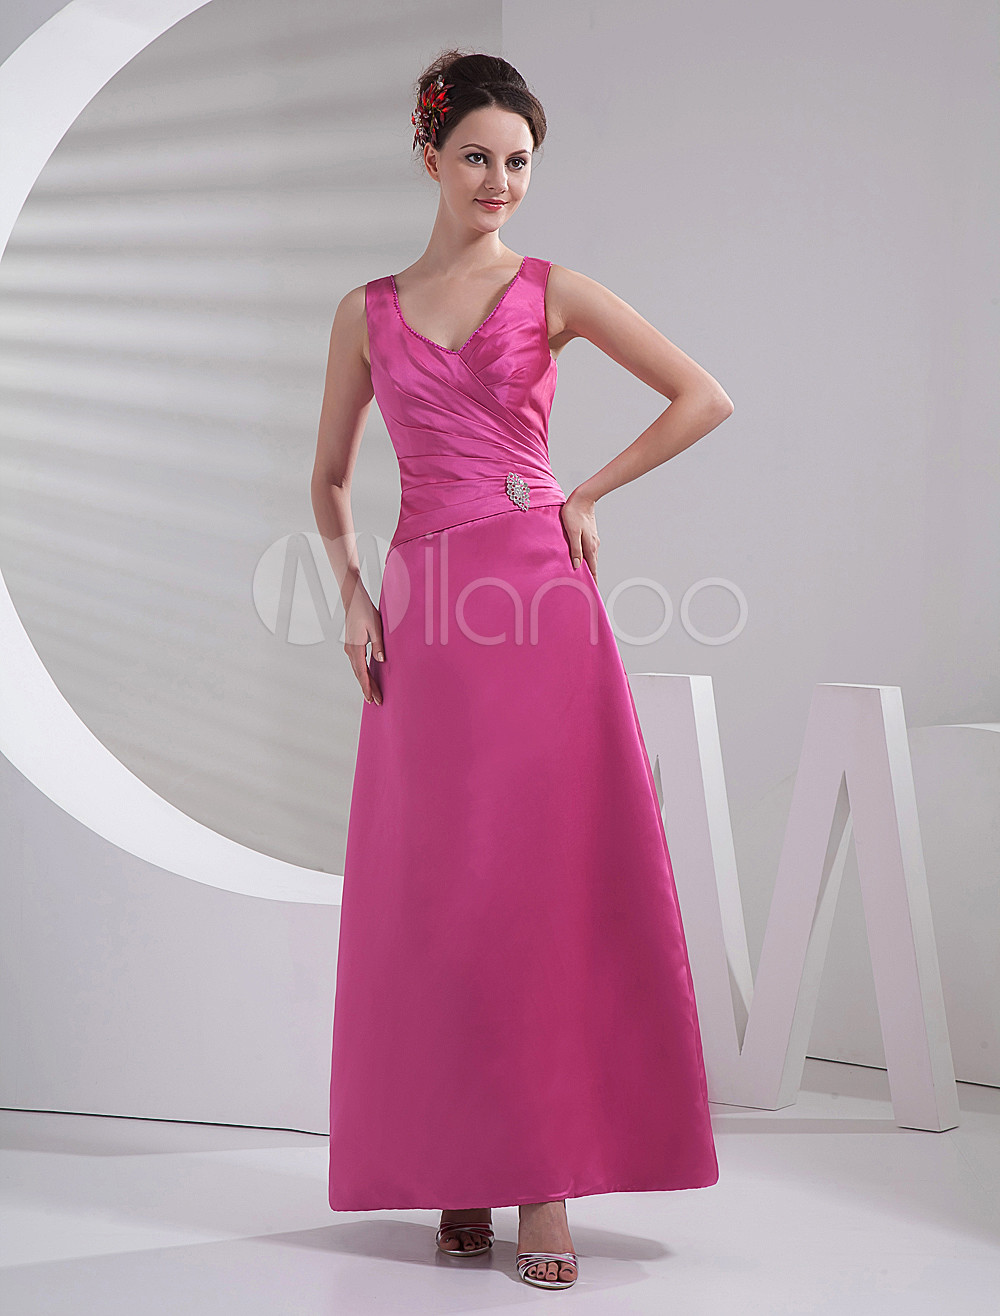 V-Neck Satin Floor Length Bridesmaid Dress